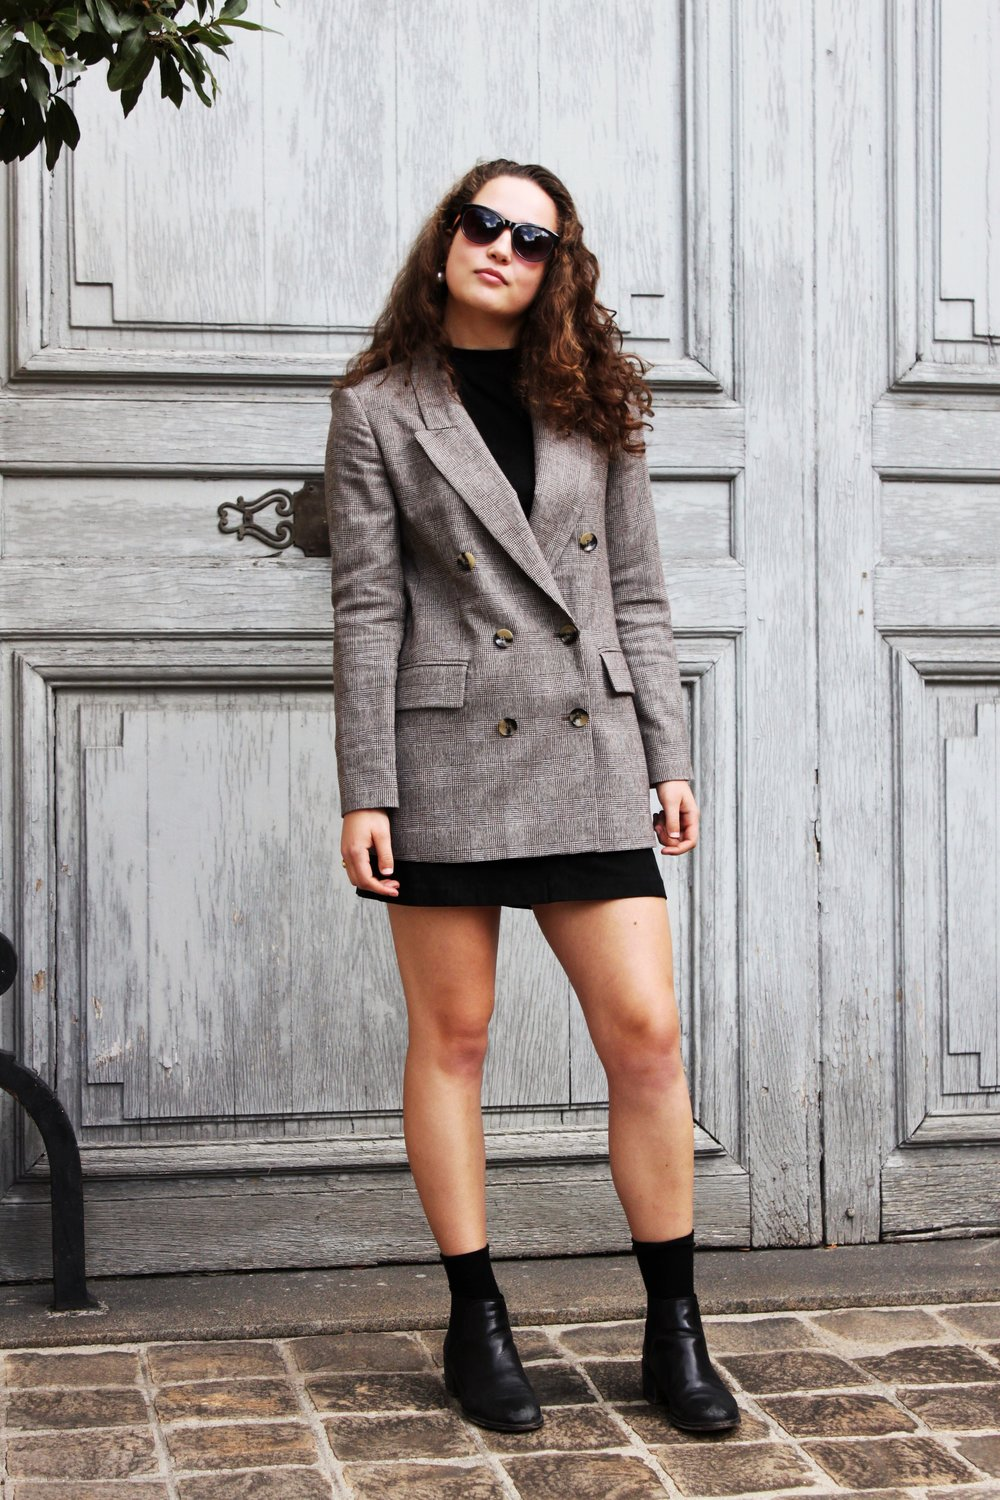 Menswear Inspired Cady Quotidienne Power Pose.jpg